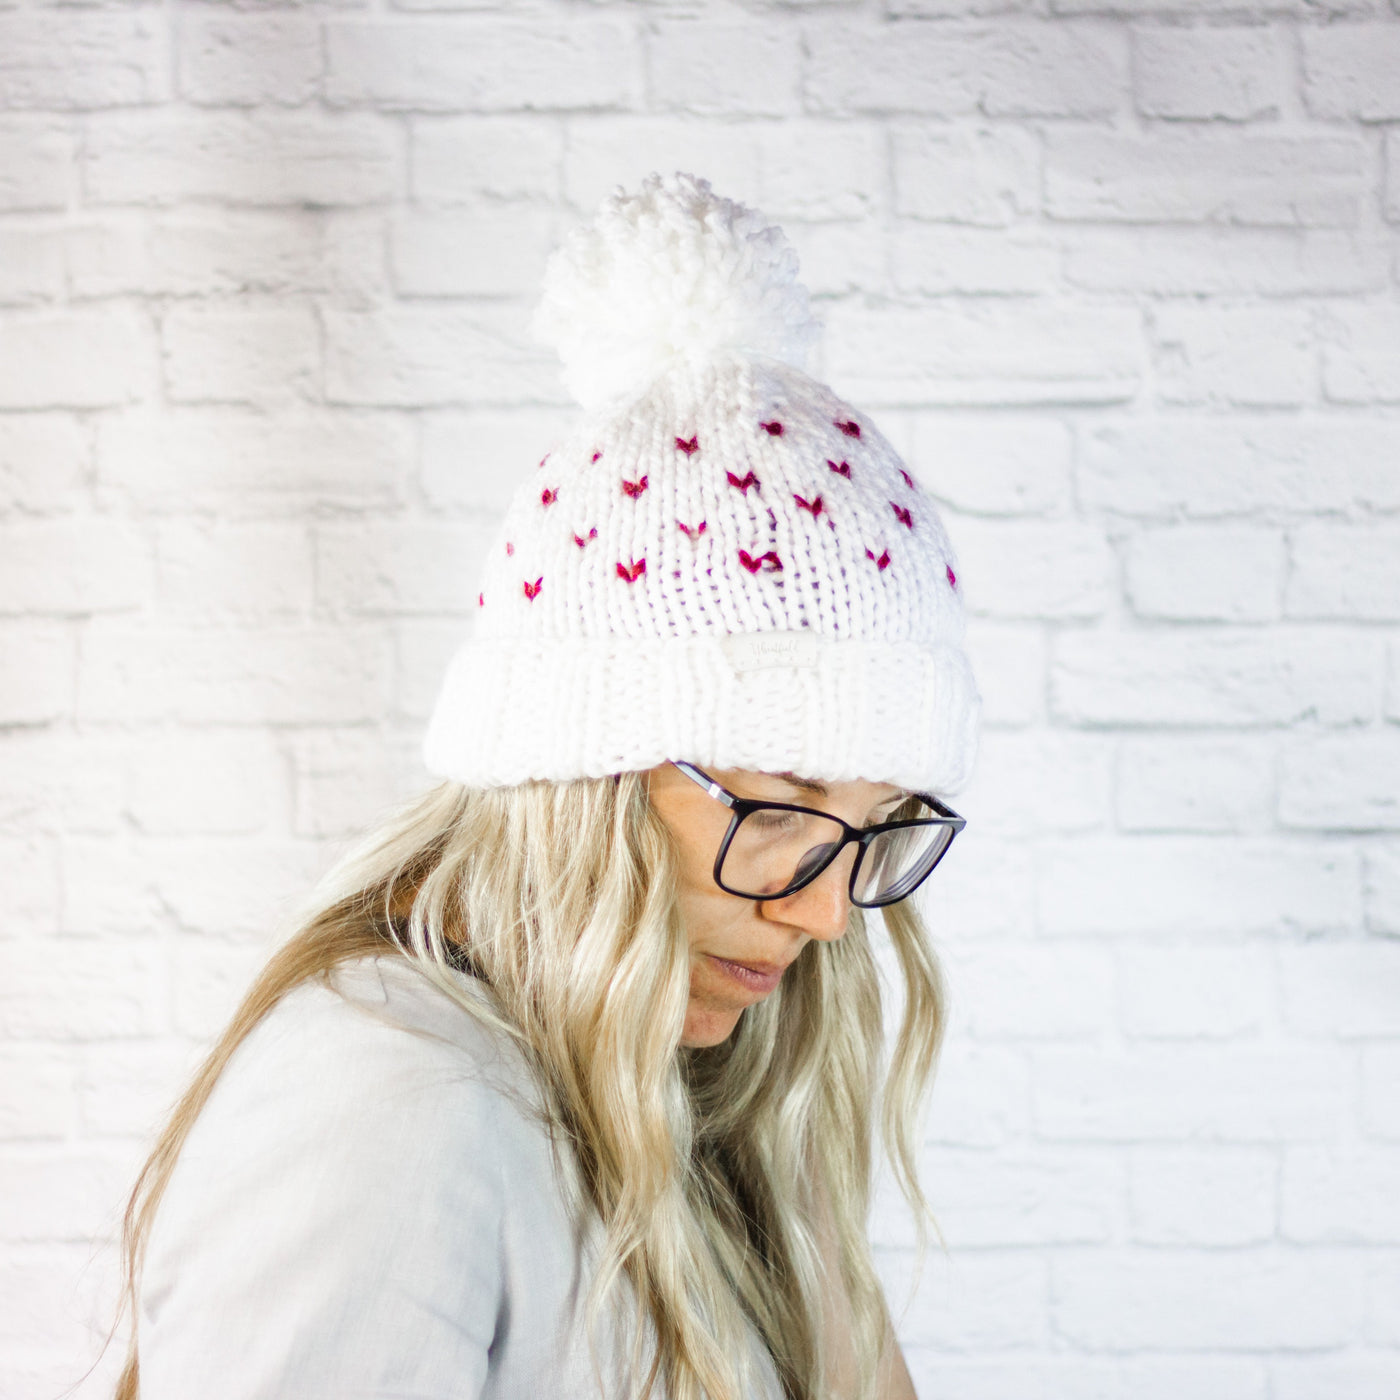 Wheatfield Knitwear Hats Knitted Mini Heart Beanie Hat with Pom Pom, Valentine's Day Accessory, Galentine's Gift for Her